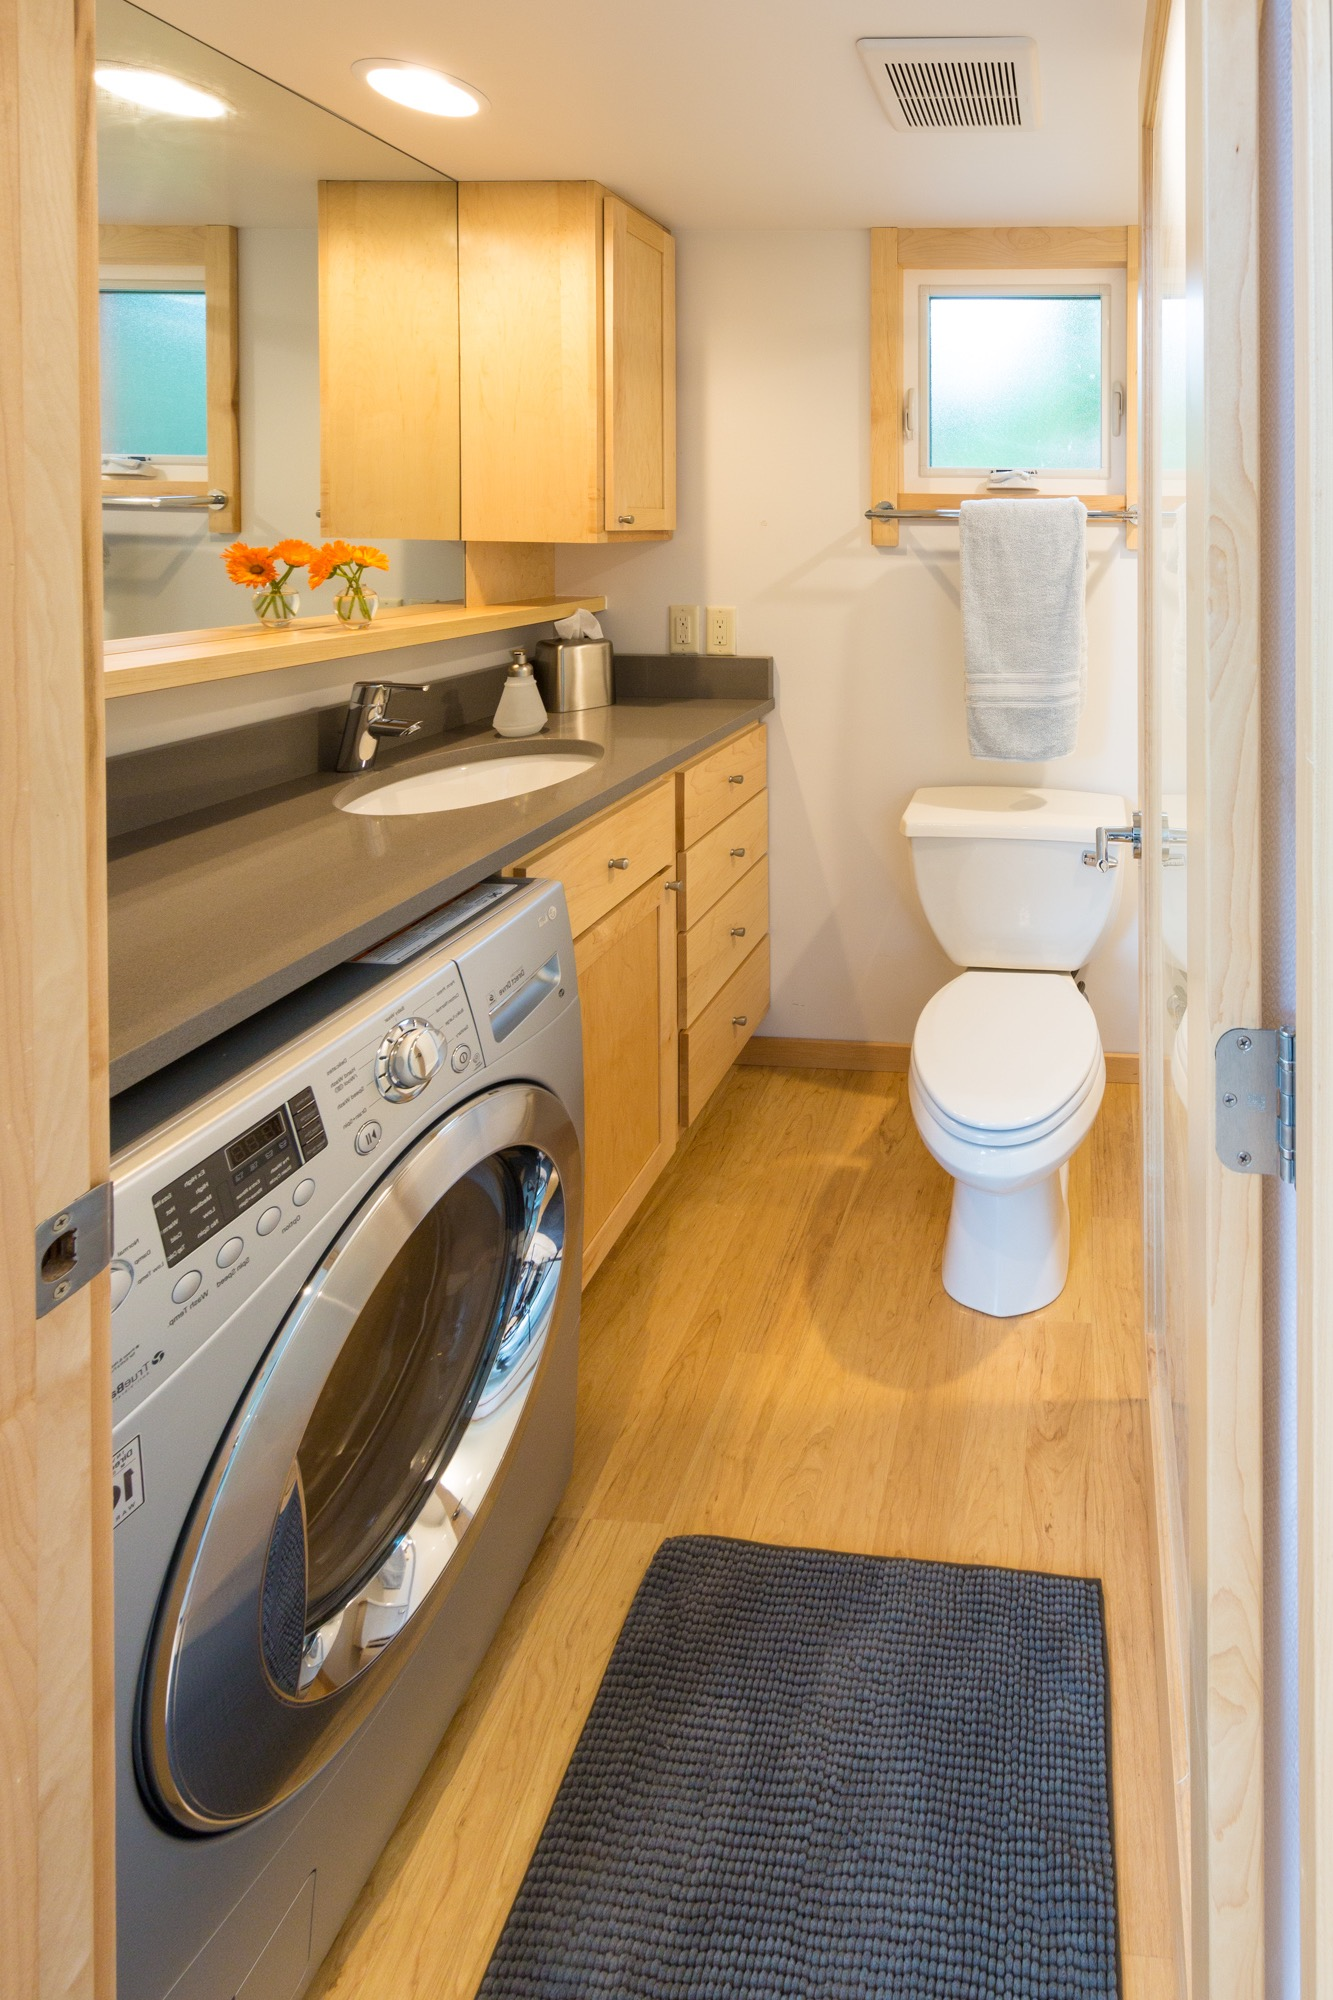 Small Bathroom And Laundry Combo Maximizes Square Footage (Image 7 of 14)